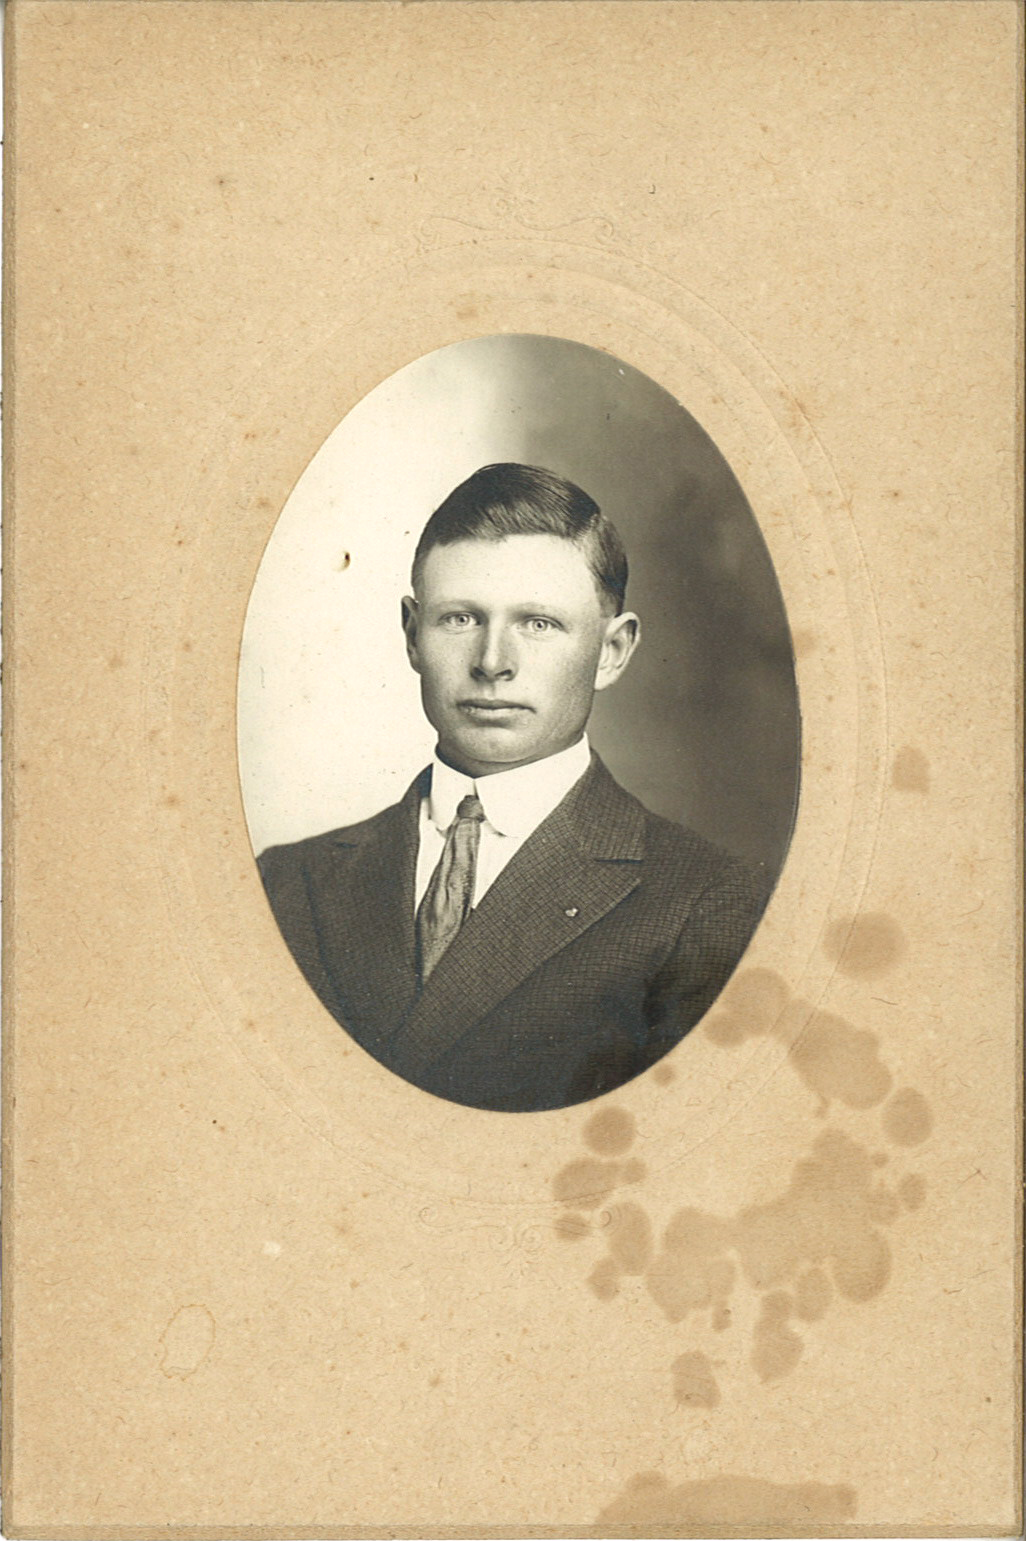 Frank E Denham circa sometime around 1915.